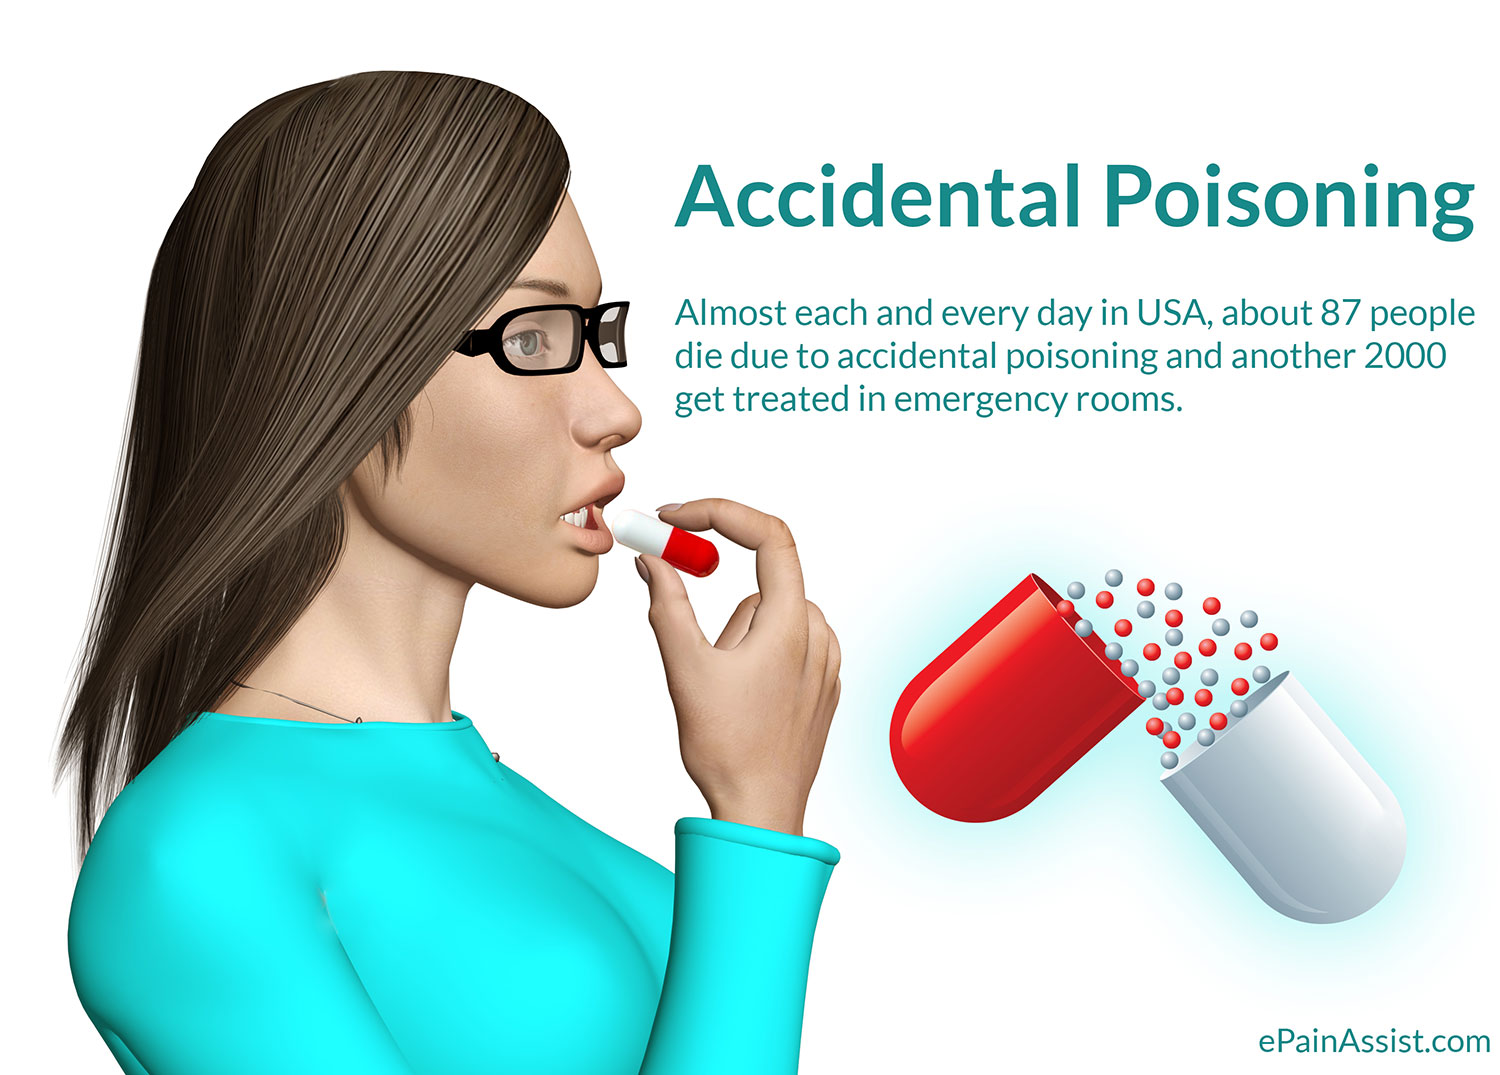 Accidental Poisoning (Unintentional Poisoning)